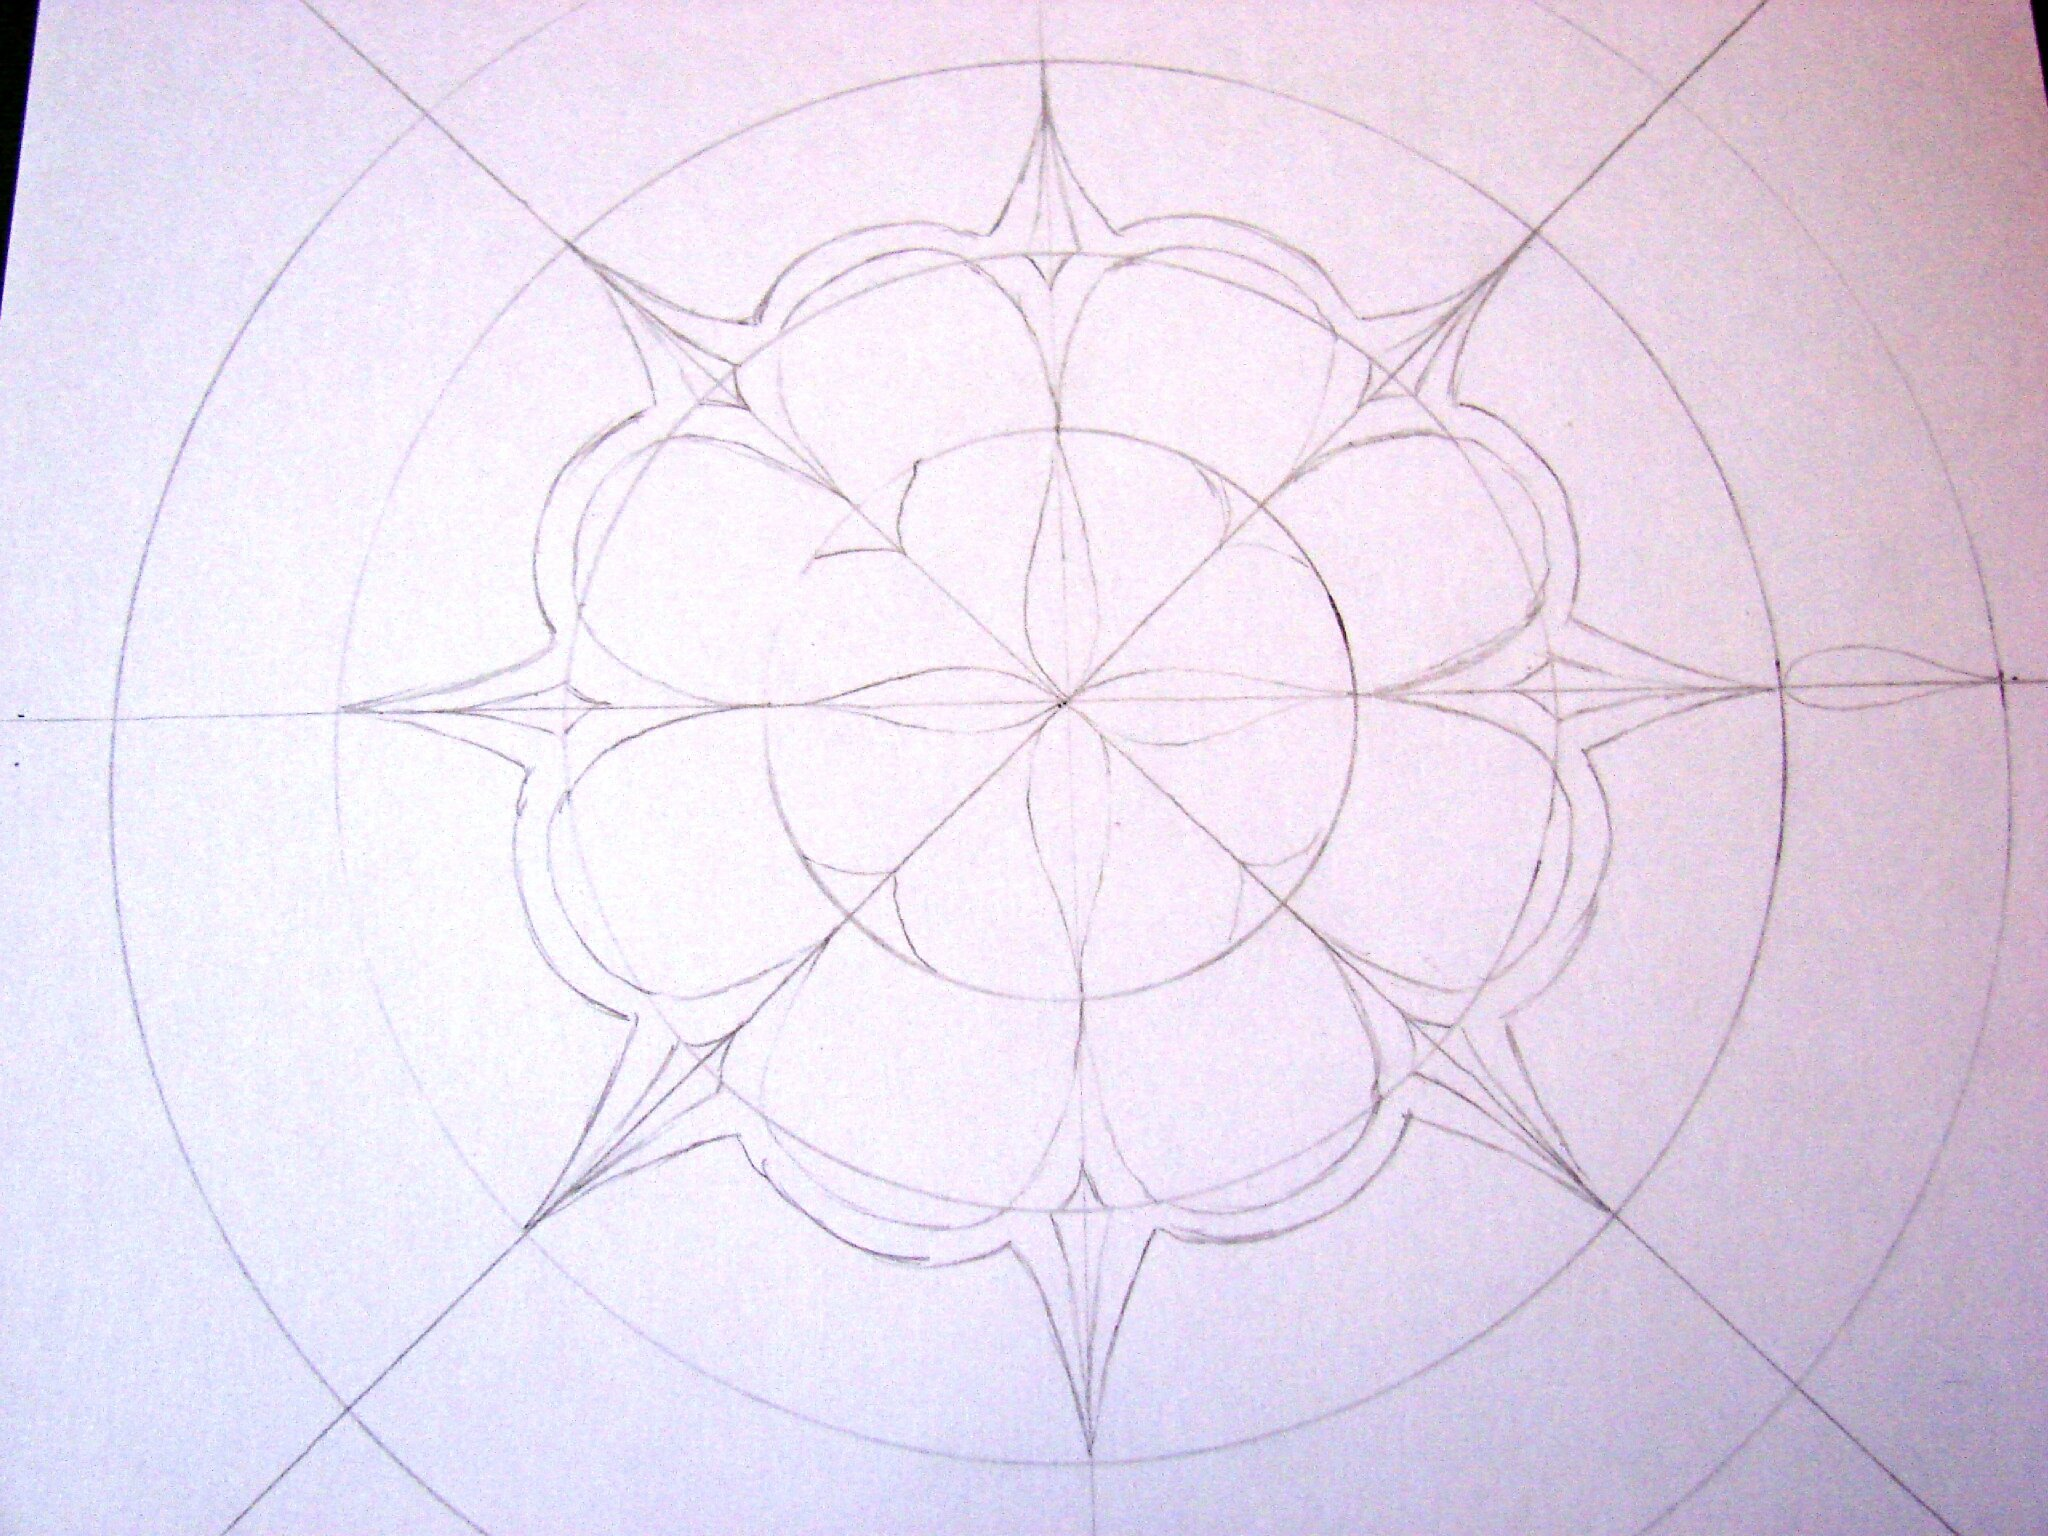 tuto dessin mandala. Black Bedroom Furniture Sets. Home Design Ideas